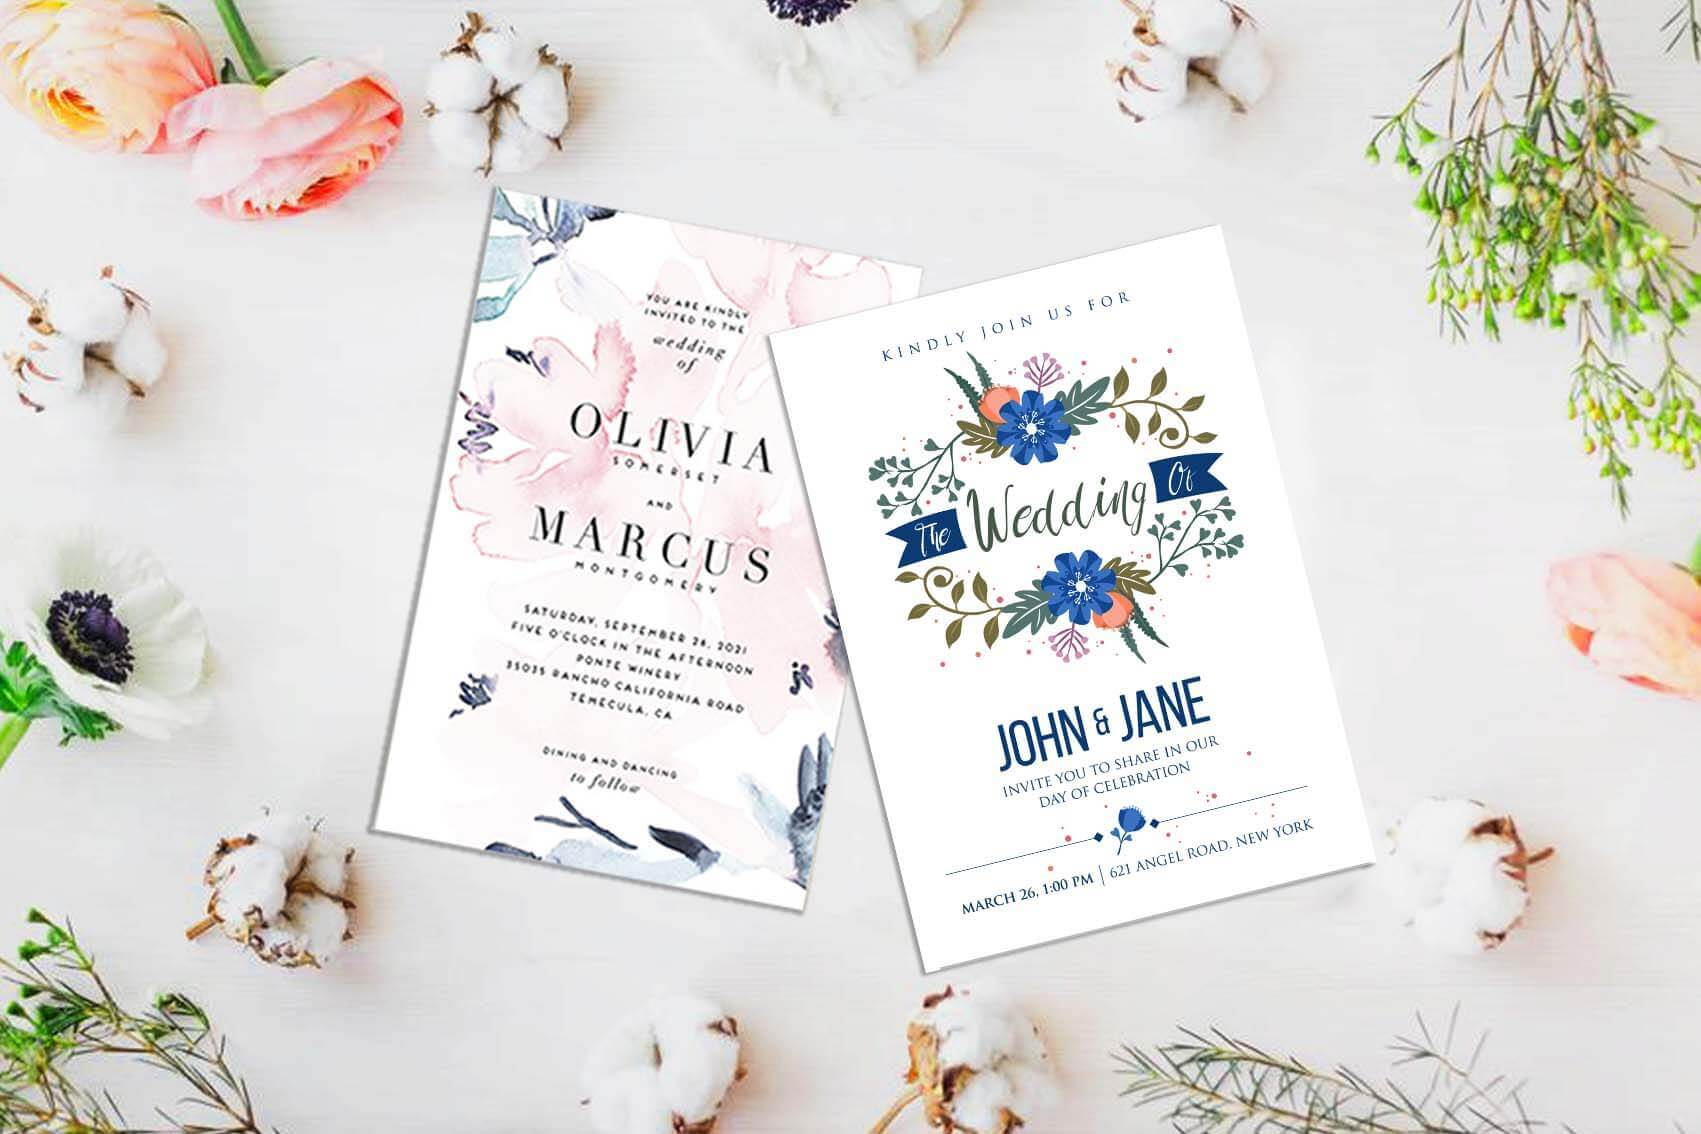 Wedding Invitation Card Printing & Design in Singapore - JoinPrint SG